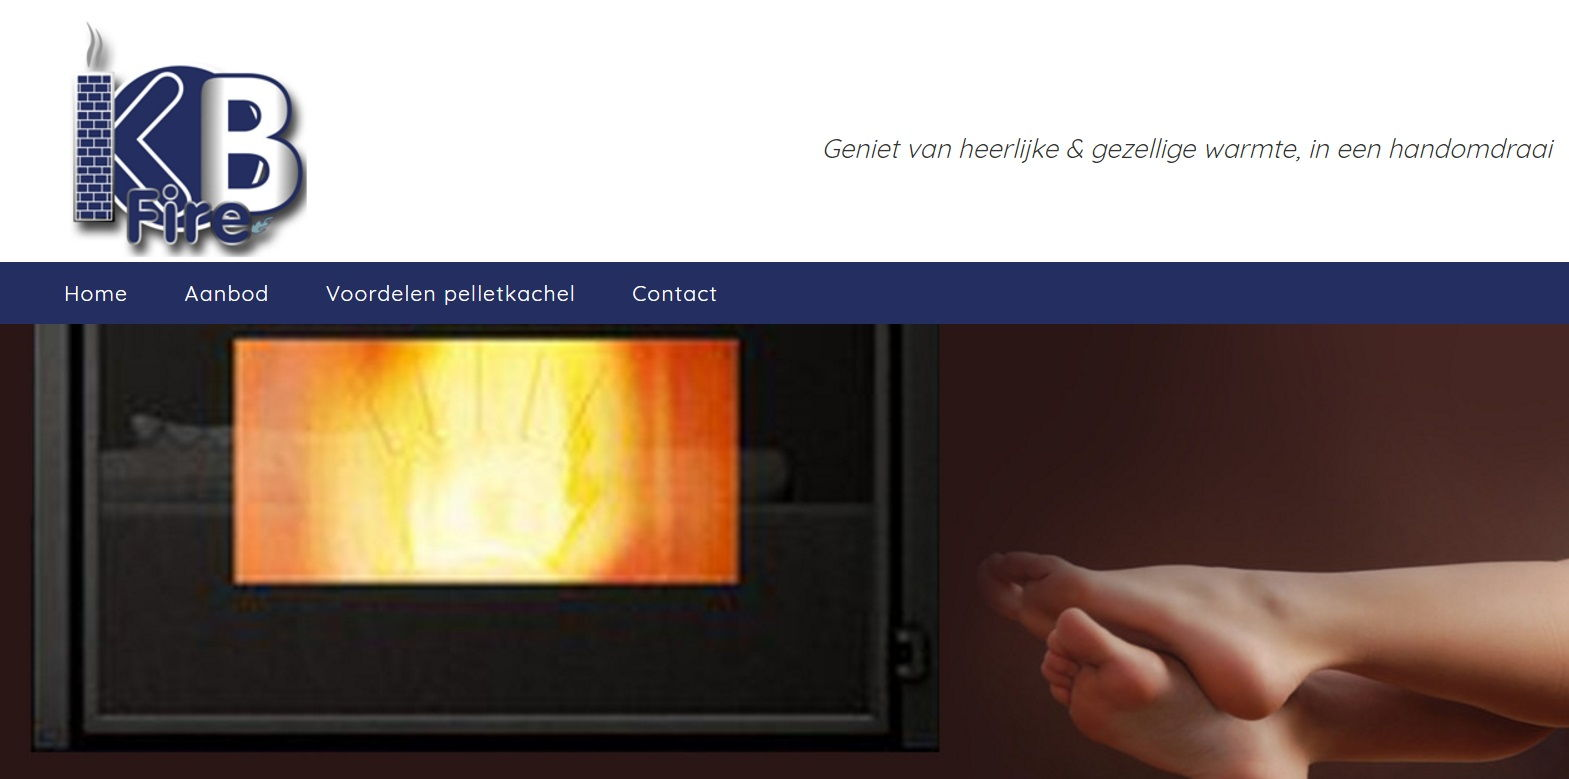 Kb fire | Webdesign Hasselt